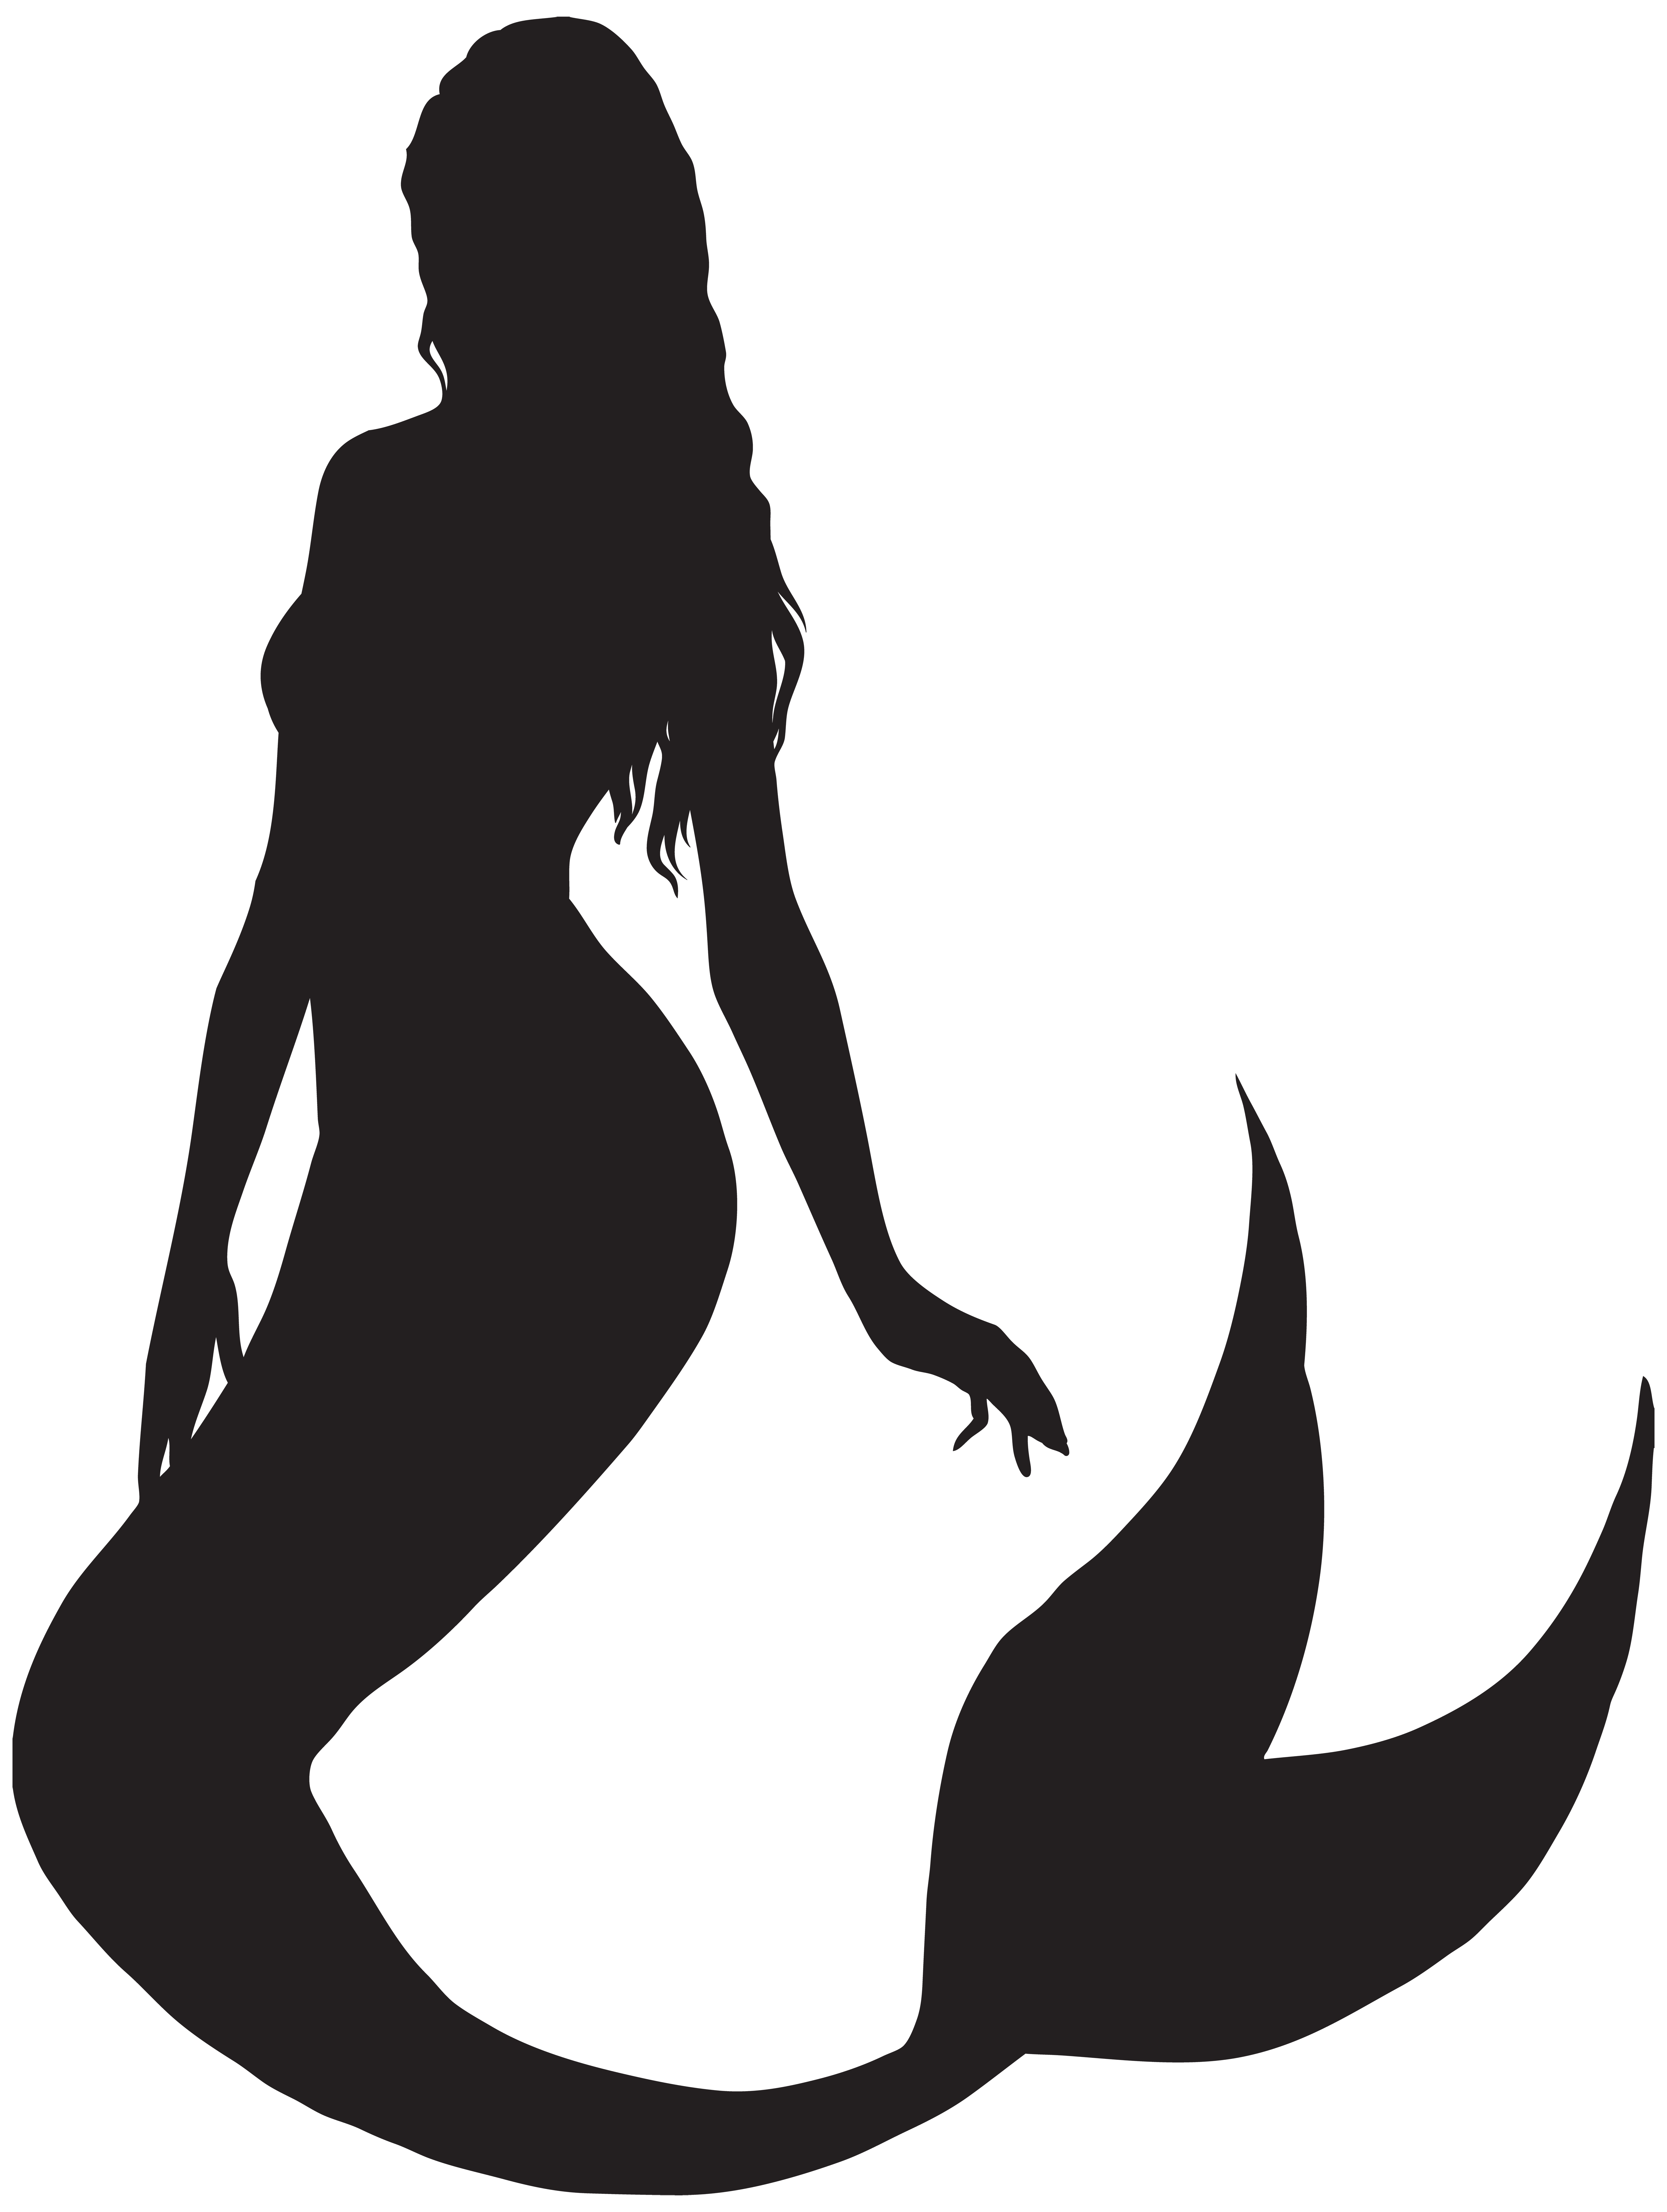 Black mermaid png. Silhouette clip art gallery